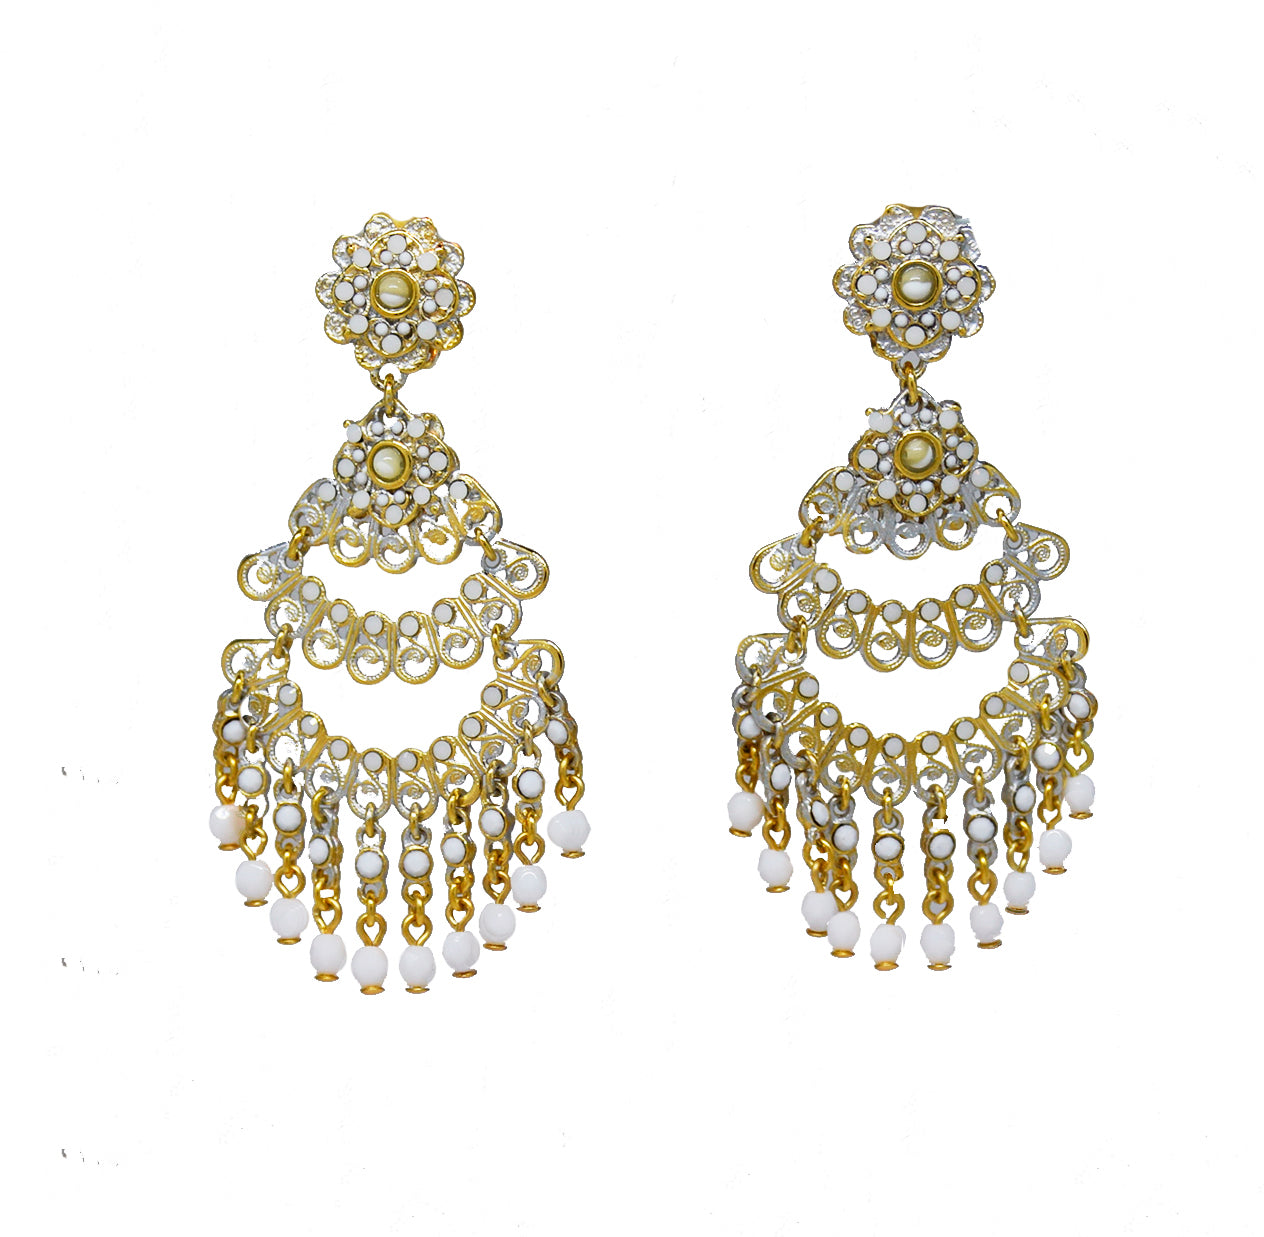 115  Gold filigree chandelier clip earring with white drops